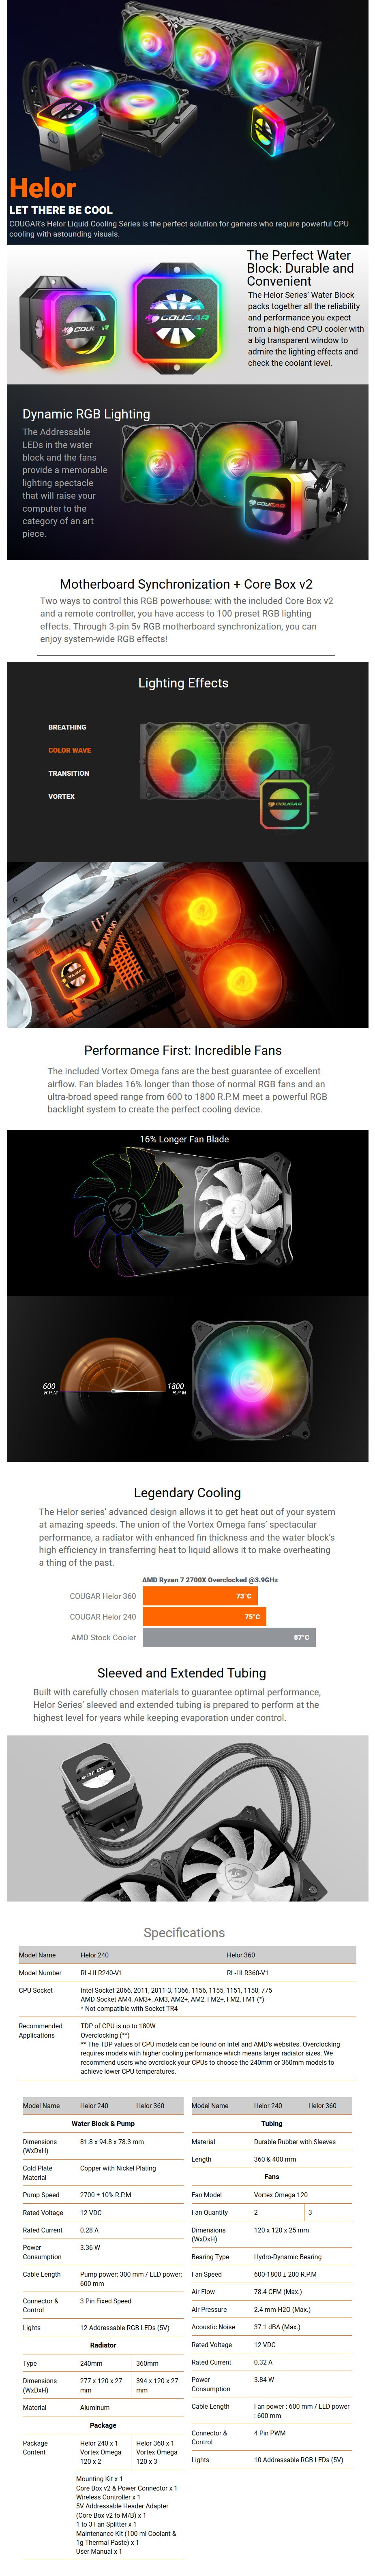 Cougar Helor 240 RGB AIO Liquid CPU Cooler - Desktop Overview 1